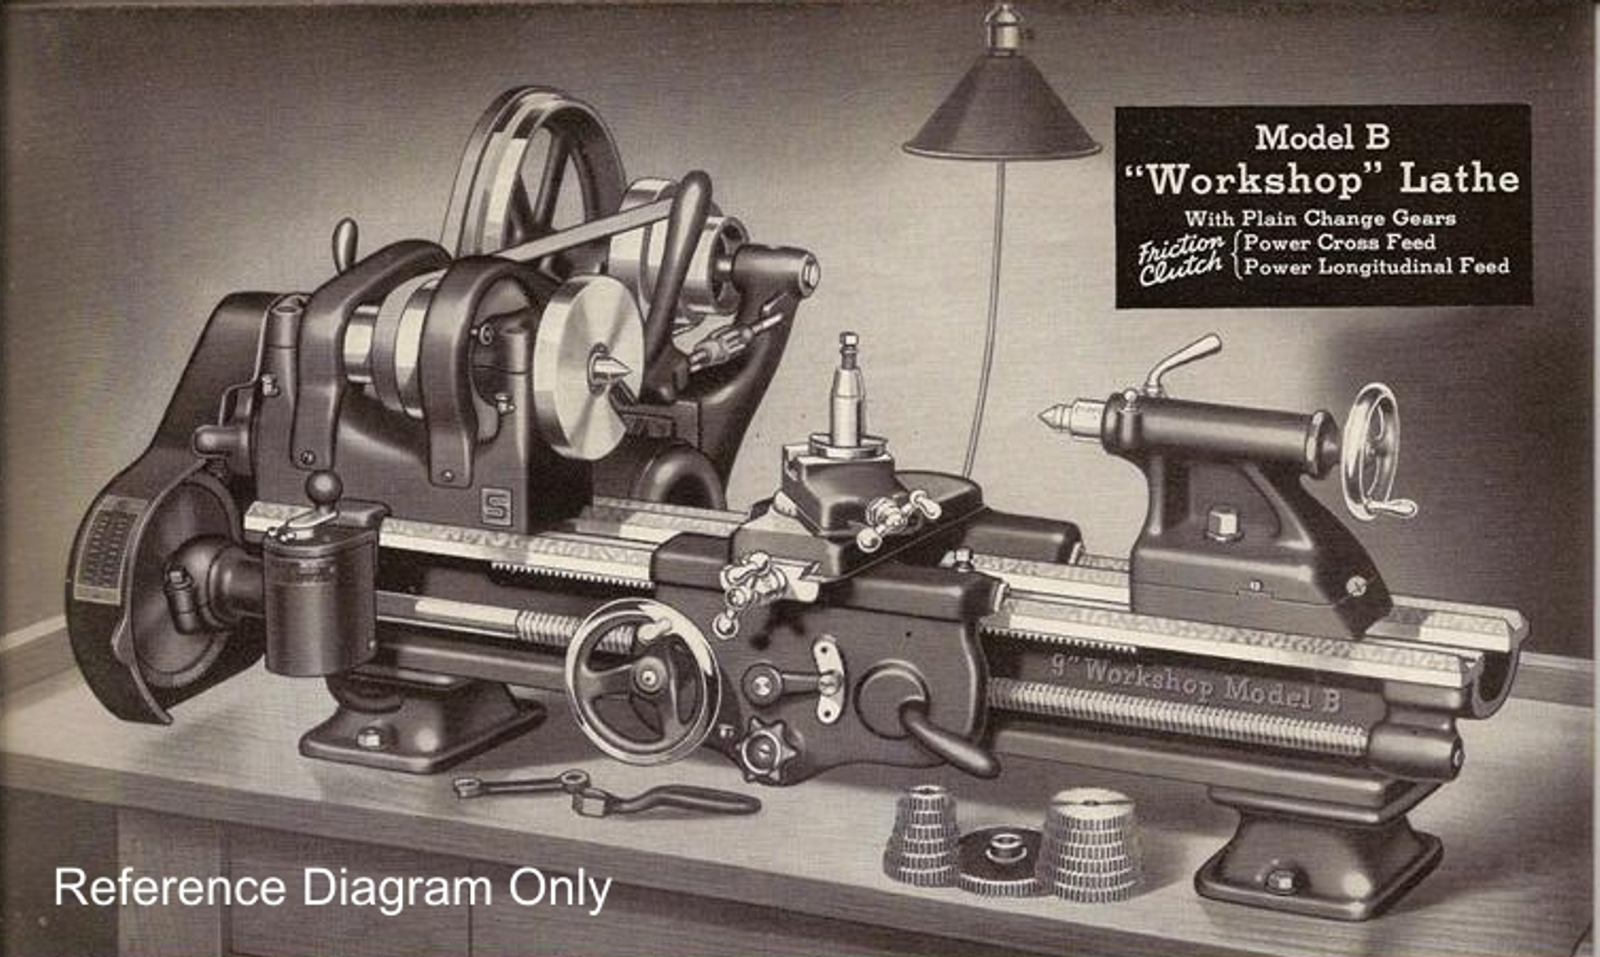 South Bend Lathe Wiring Diagram | Wiring Library